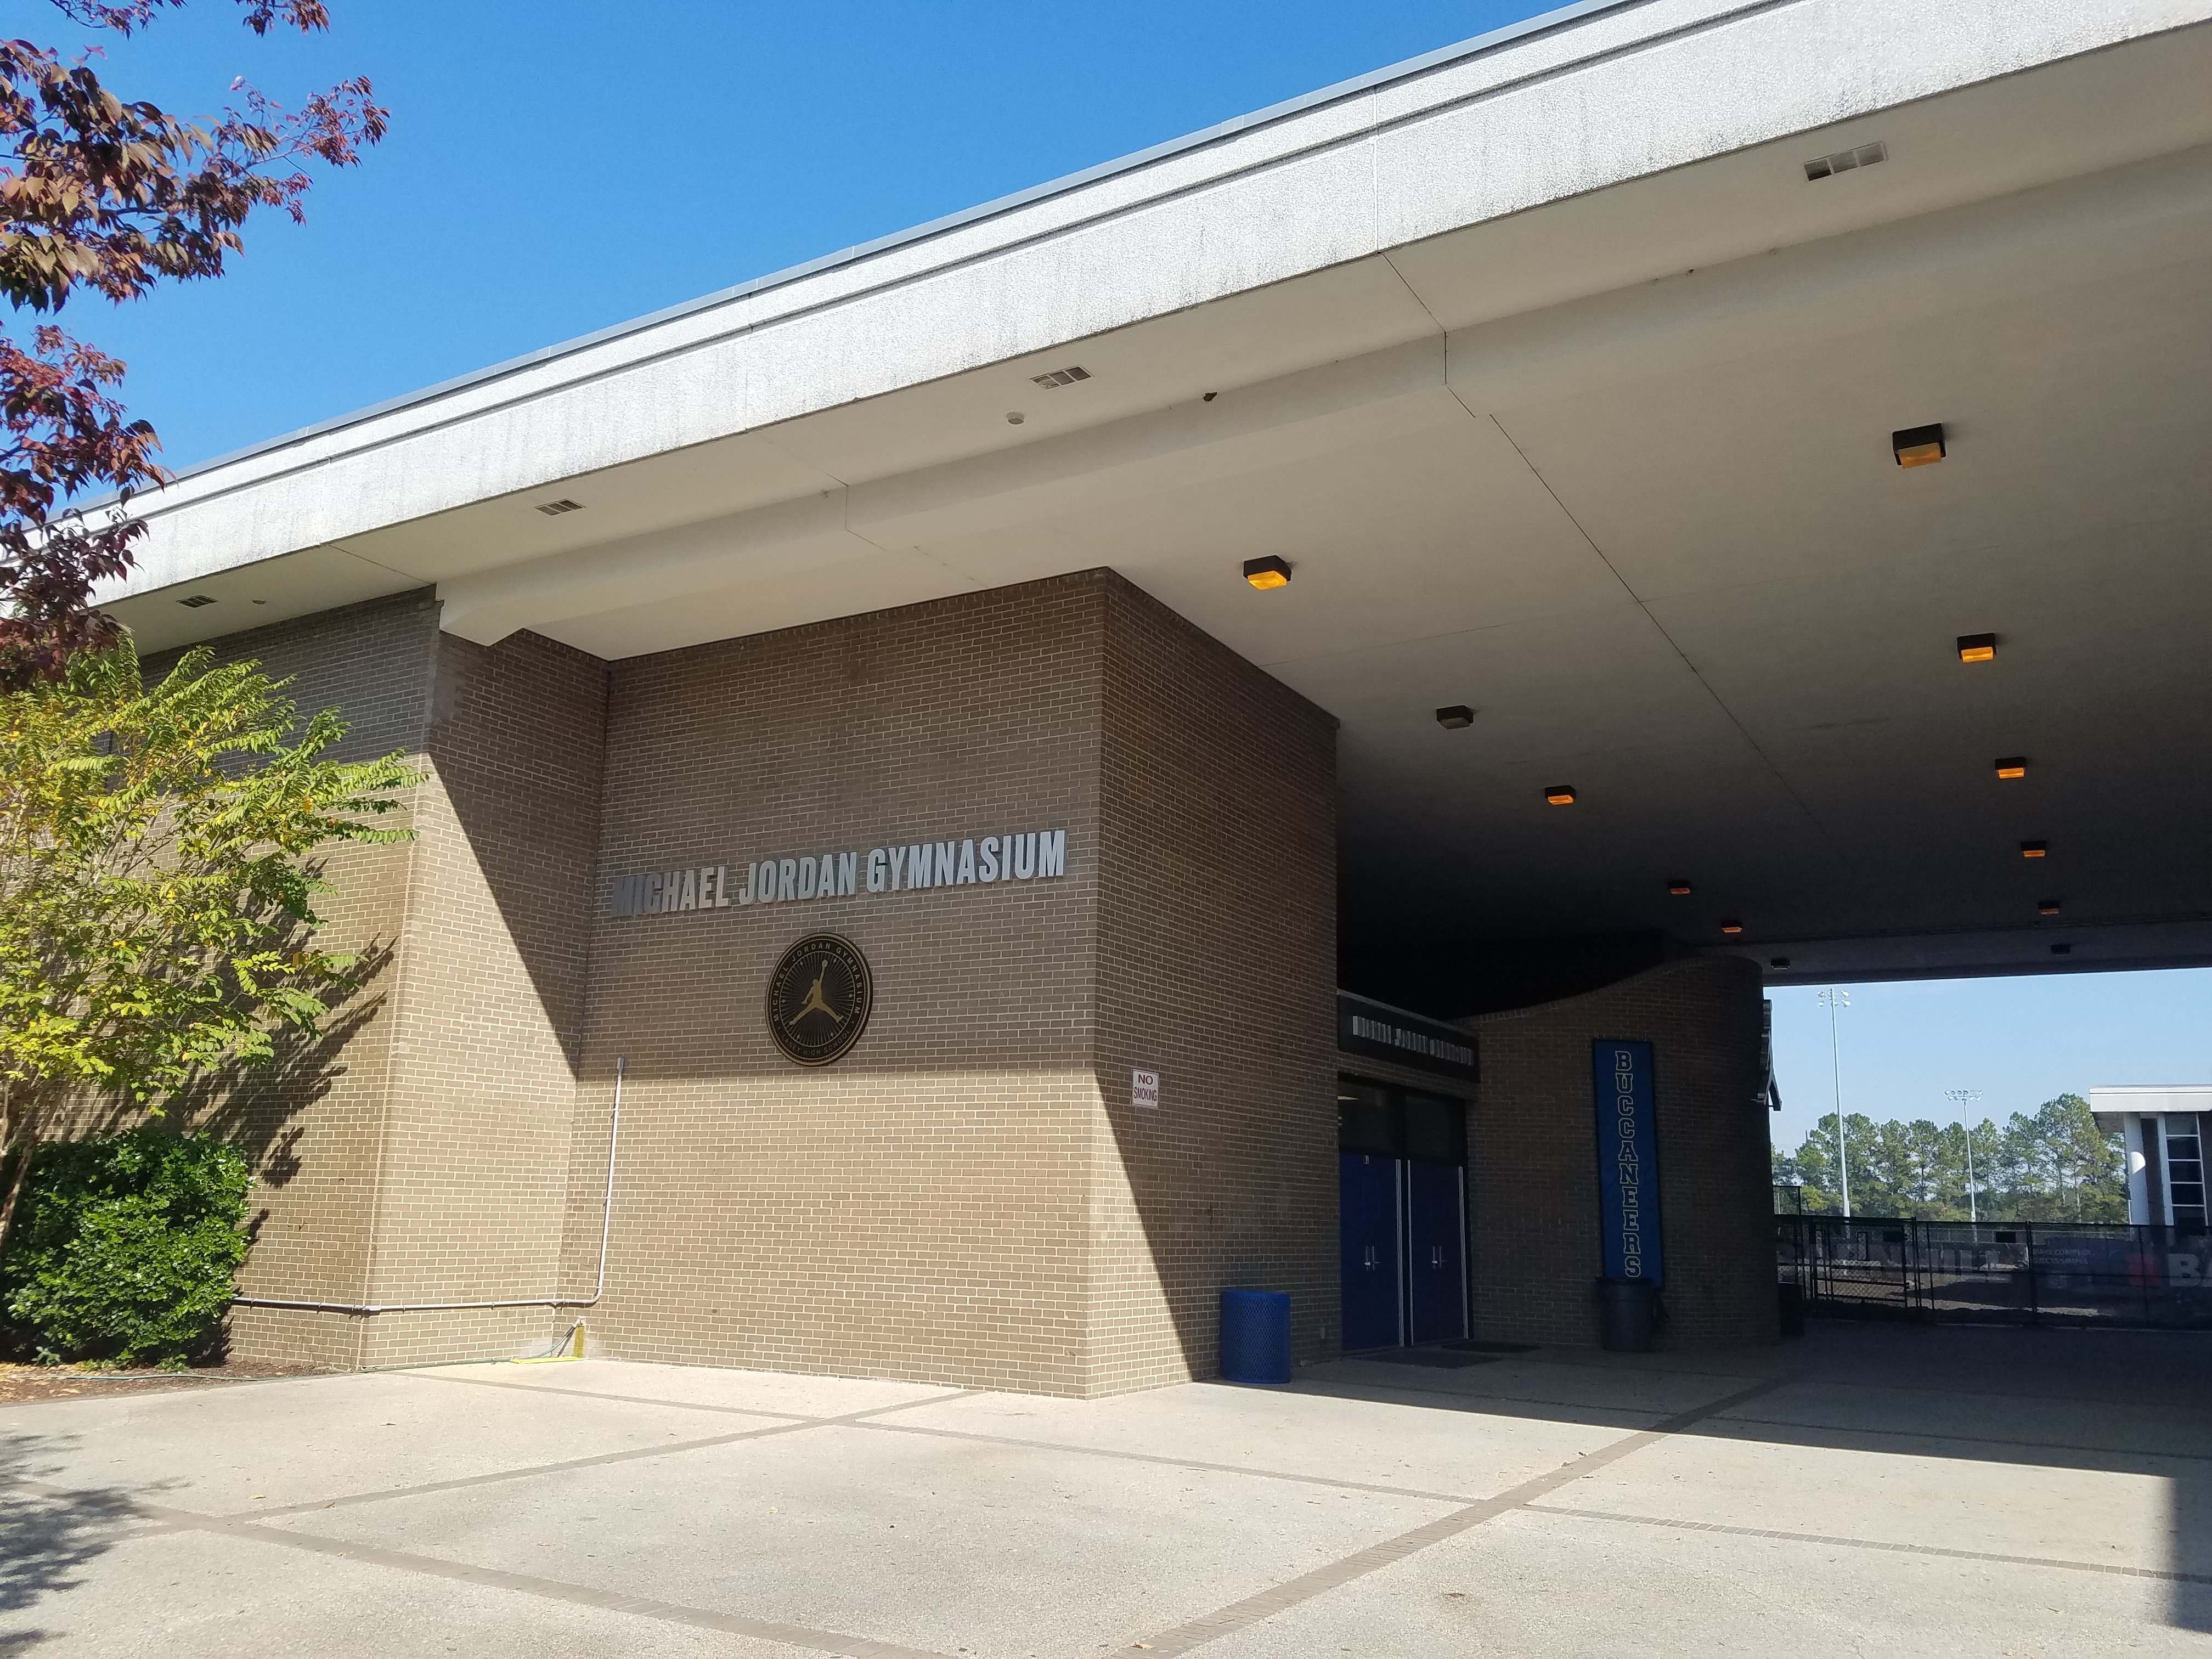 f1ed4c43c34a The Michael Jordan Gymnasium at Laney. The Laney High School